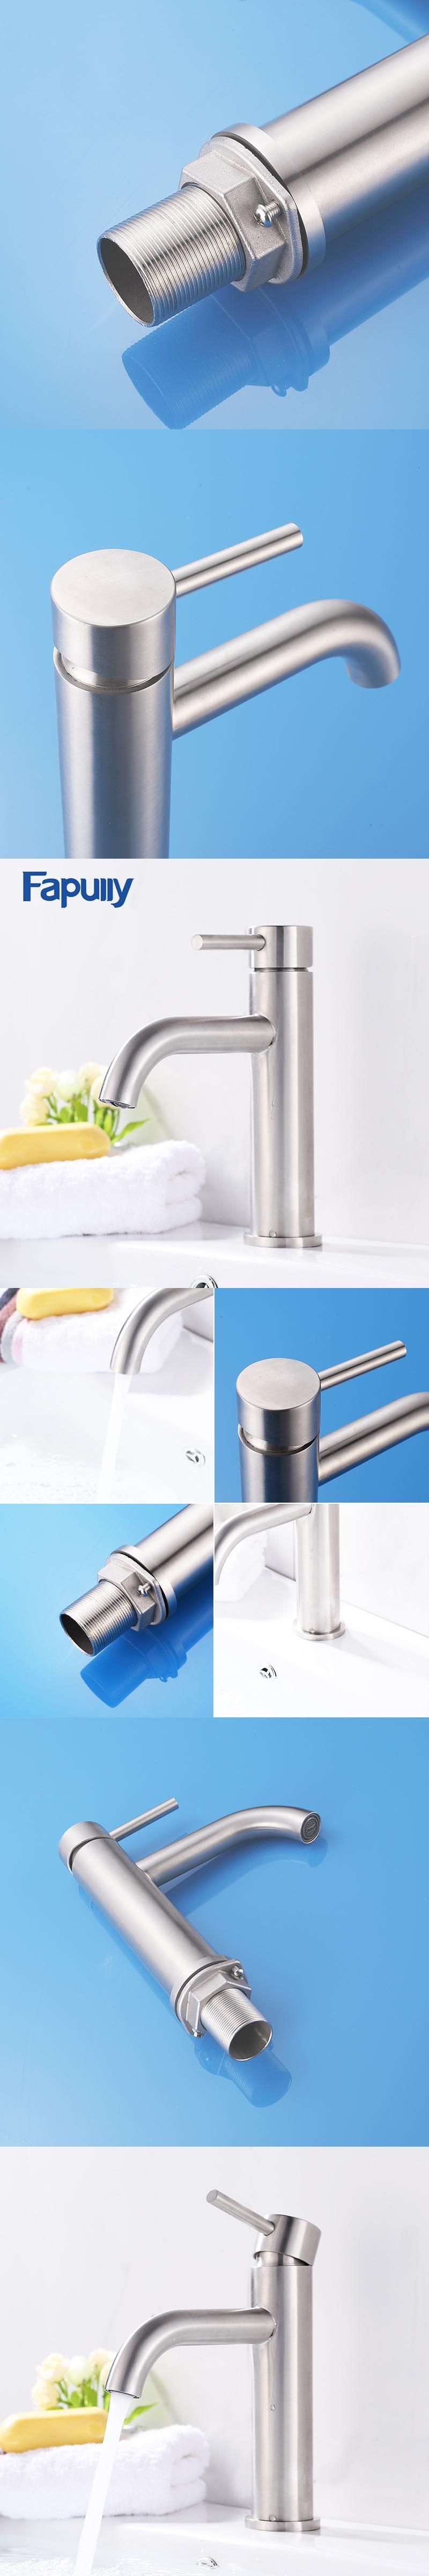 Fapully Bathroom Basin Faucet Brushed Nickel Deck Mounted Stainless ...